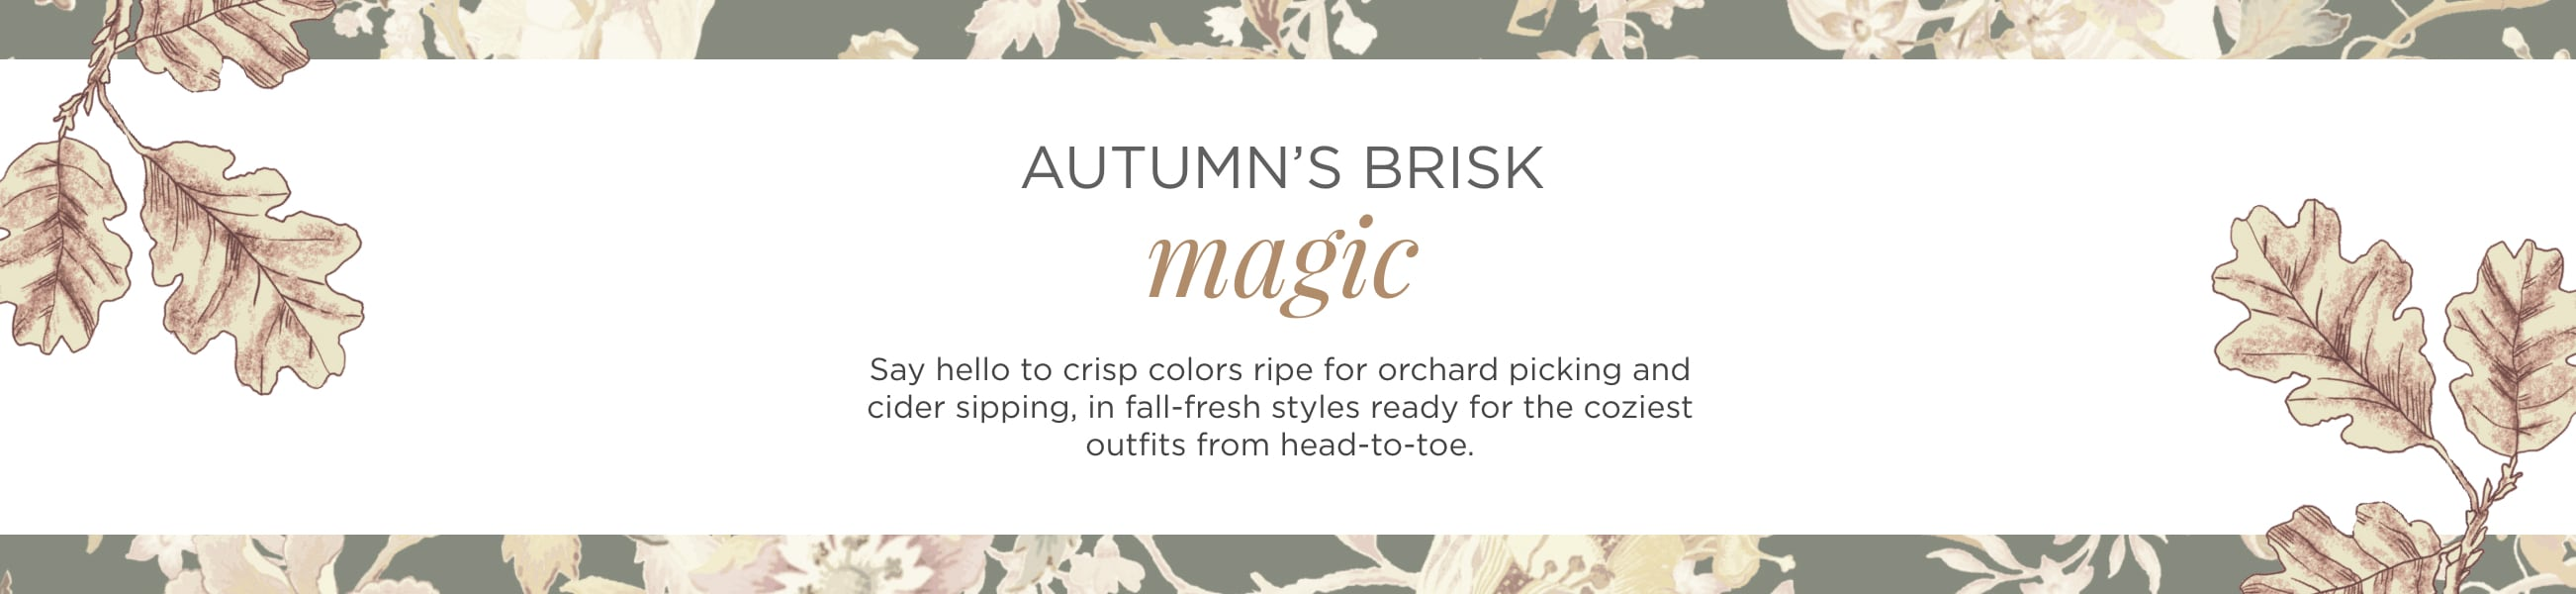 """Autumn's Brisk Magic. Say """"Hello"""" to crisp colors ripe for orchard picking and cider sipping, in fall-fresh styles reacy for the coziest outfits from head-to-toe."""